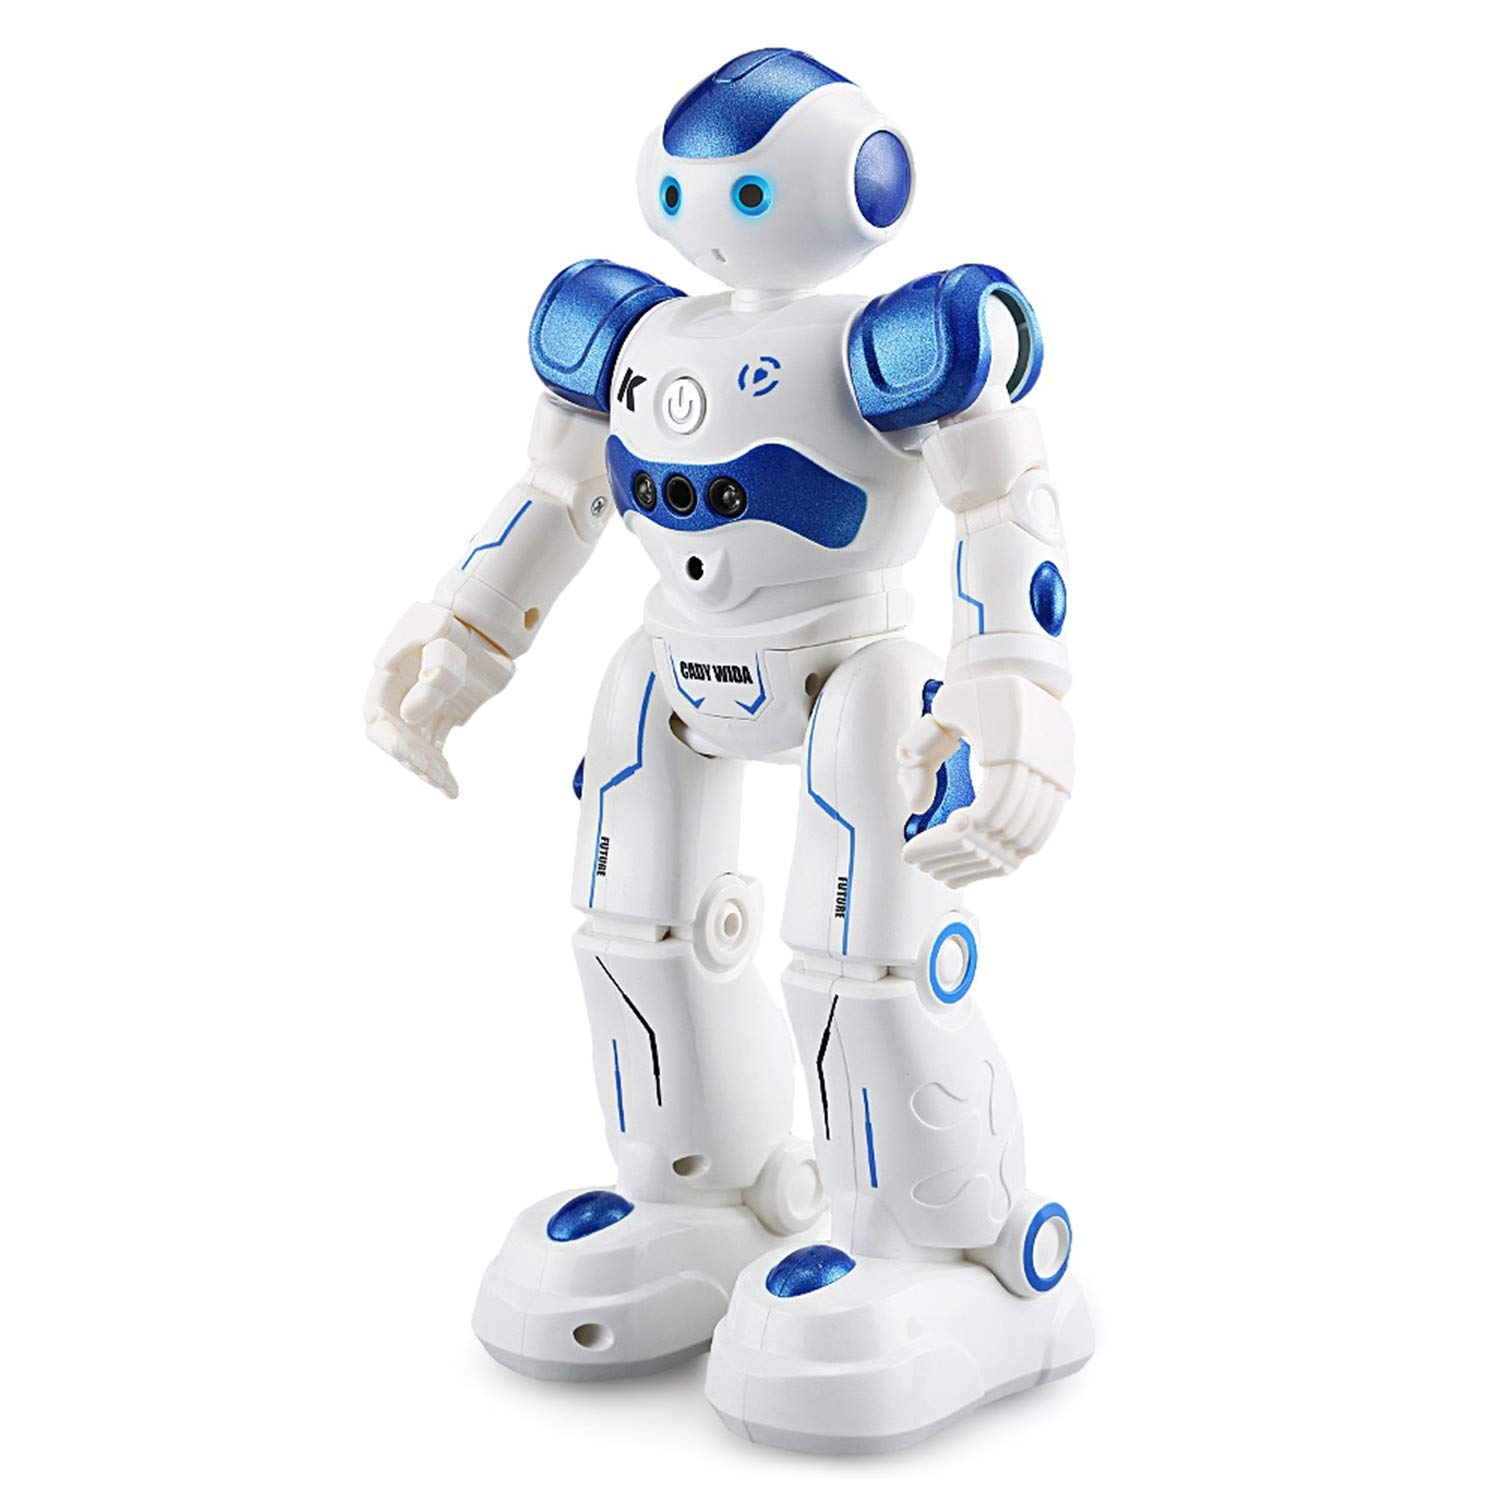 R2 Cady WIDA Intelligent RC Robot RTR Obstacle Avoidance/Movement Programming/Gesture Control